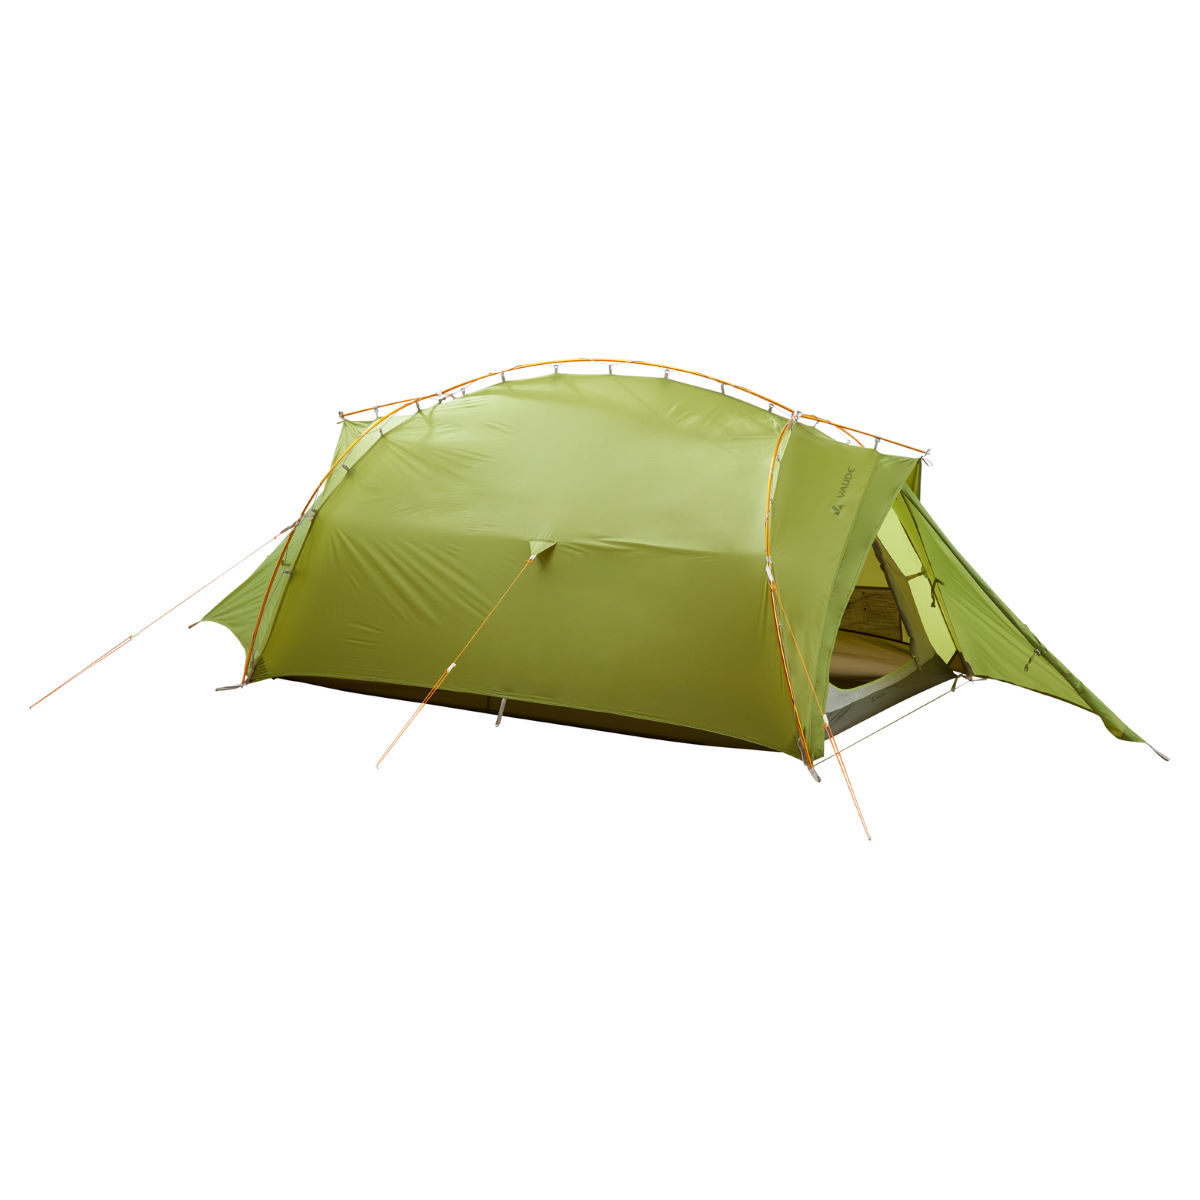 Vaude Vaude Mark L 2P Tent   Tents